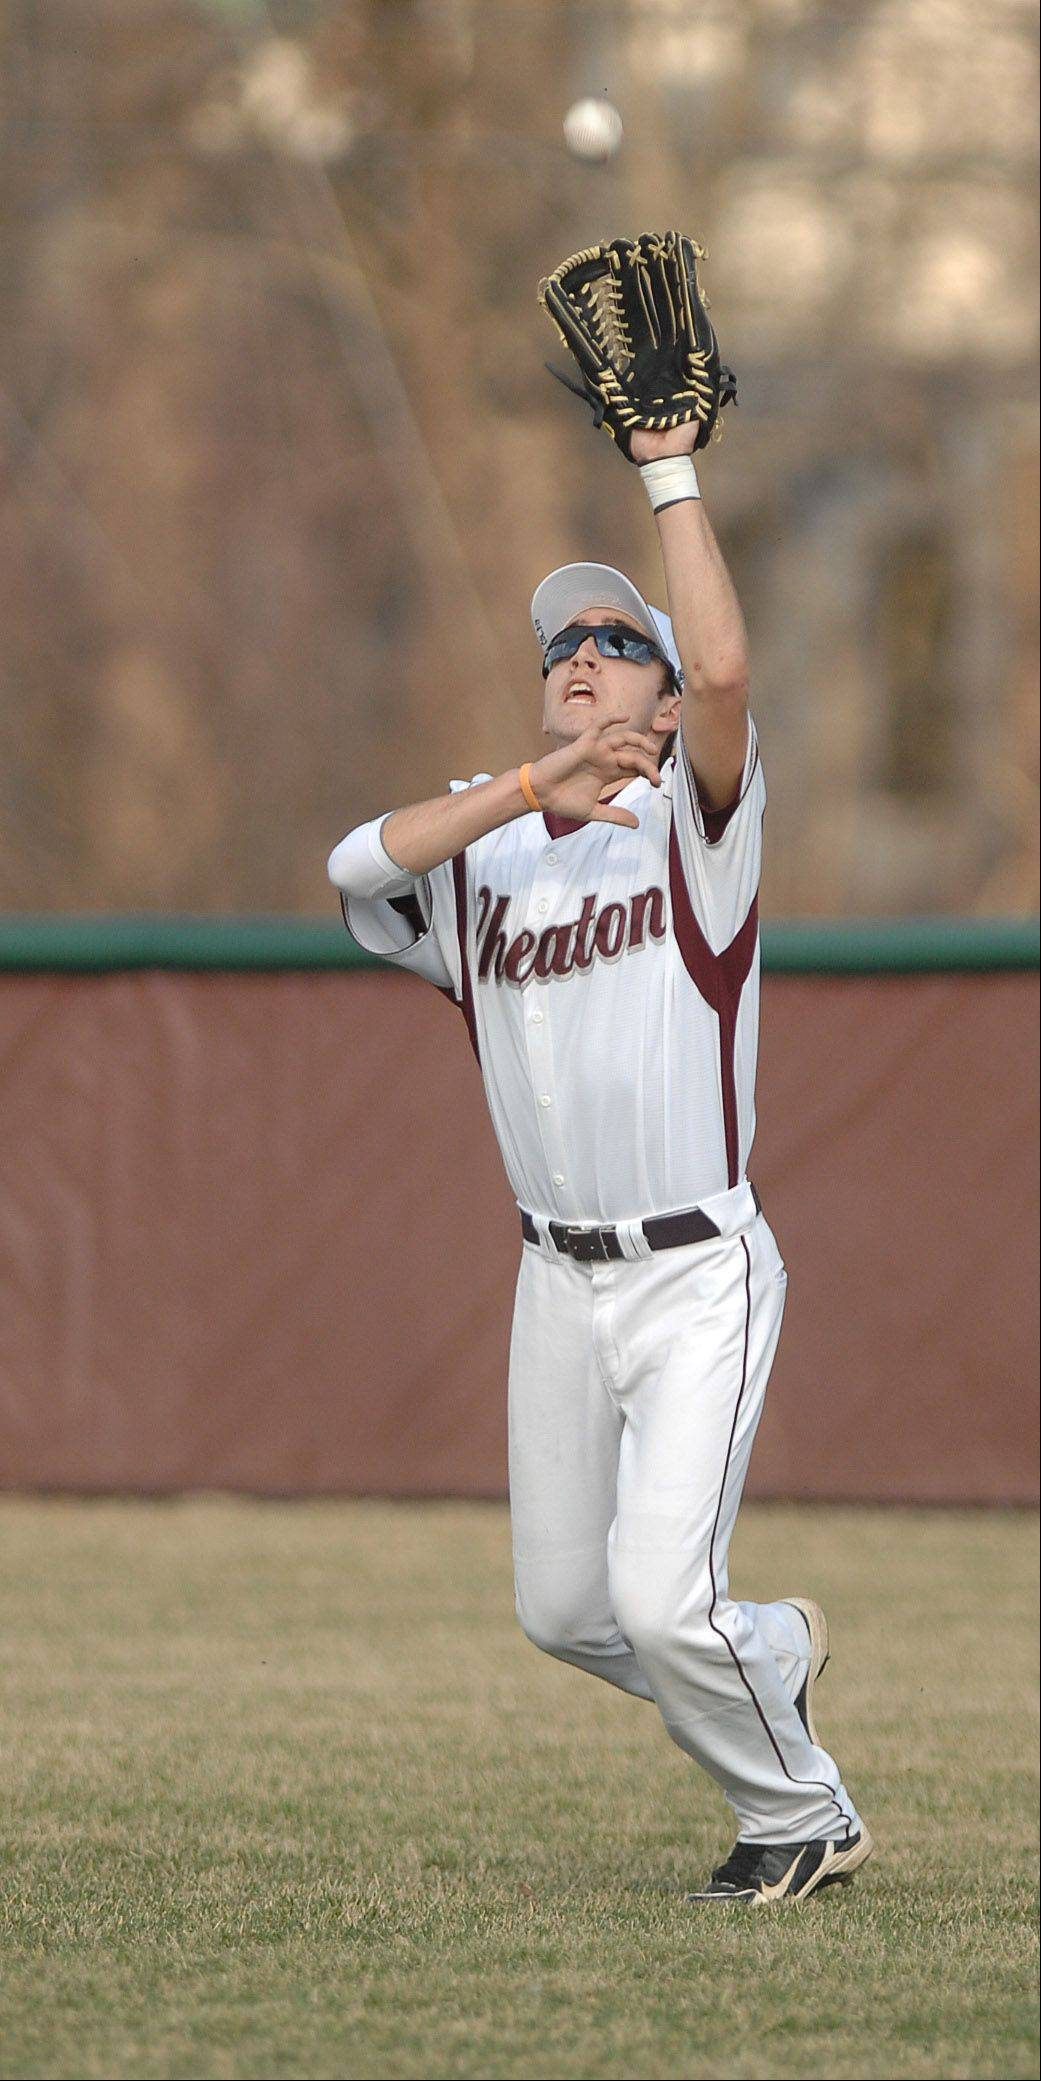 Wheaton Academy's Michael Kuppler grabs a fly ball during Wednesday's game against Gelnbard West.